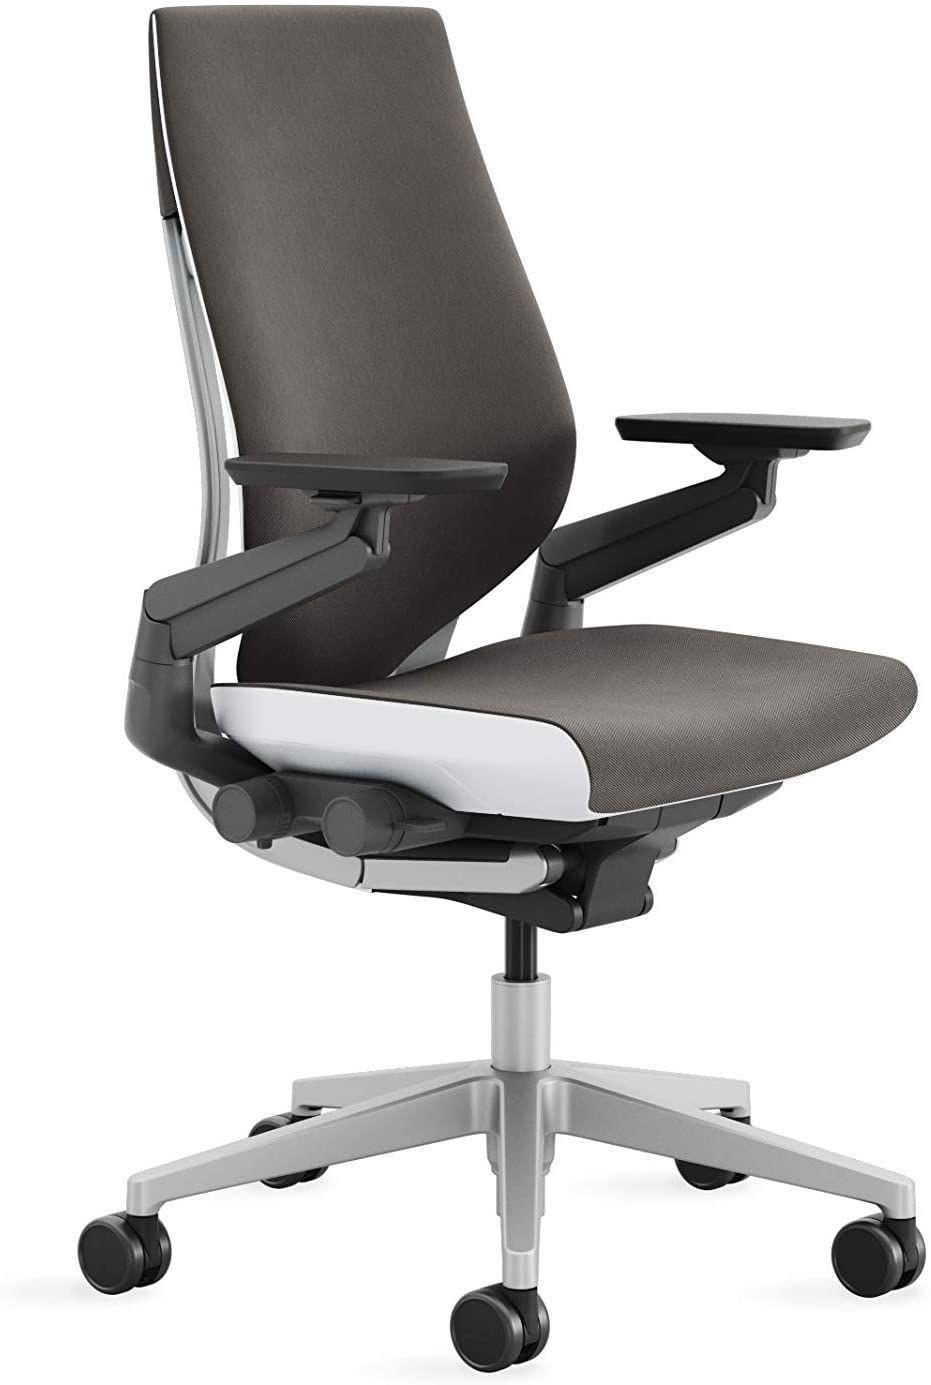 """<p><strong>Steelcase</strong></p><p>amazon.com</p><p><strong>$803.71</strong></p><p><a href=""""https://www.amazon.com/dp/B016OIF2JU?tag=syn-yahoo-20&ascsubtag=%5Bartid%7C10051.g.36806955%5Bsrc%7Cyahoo-us"""" rel=""""nofollow noopener"""" target=""""_blank"""" data-ylk=""""slk:Shop"""" class=""""link rapid-noclick-resp"""">Shop</a></p><p><strong>Save 20%</strong></p><p>You'd be right to call Steelcase the Maserati of office chairs.</p>"""